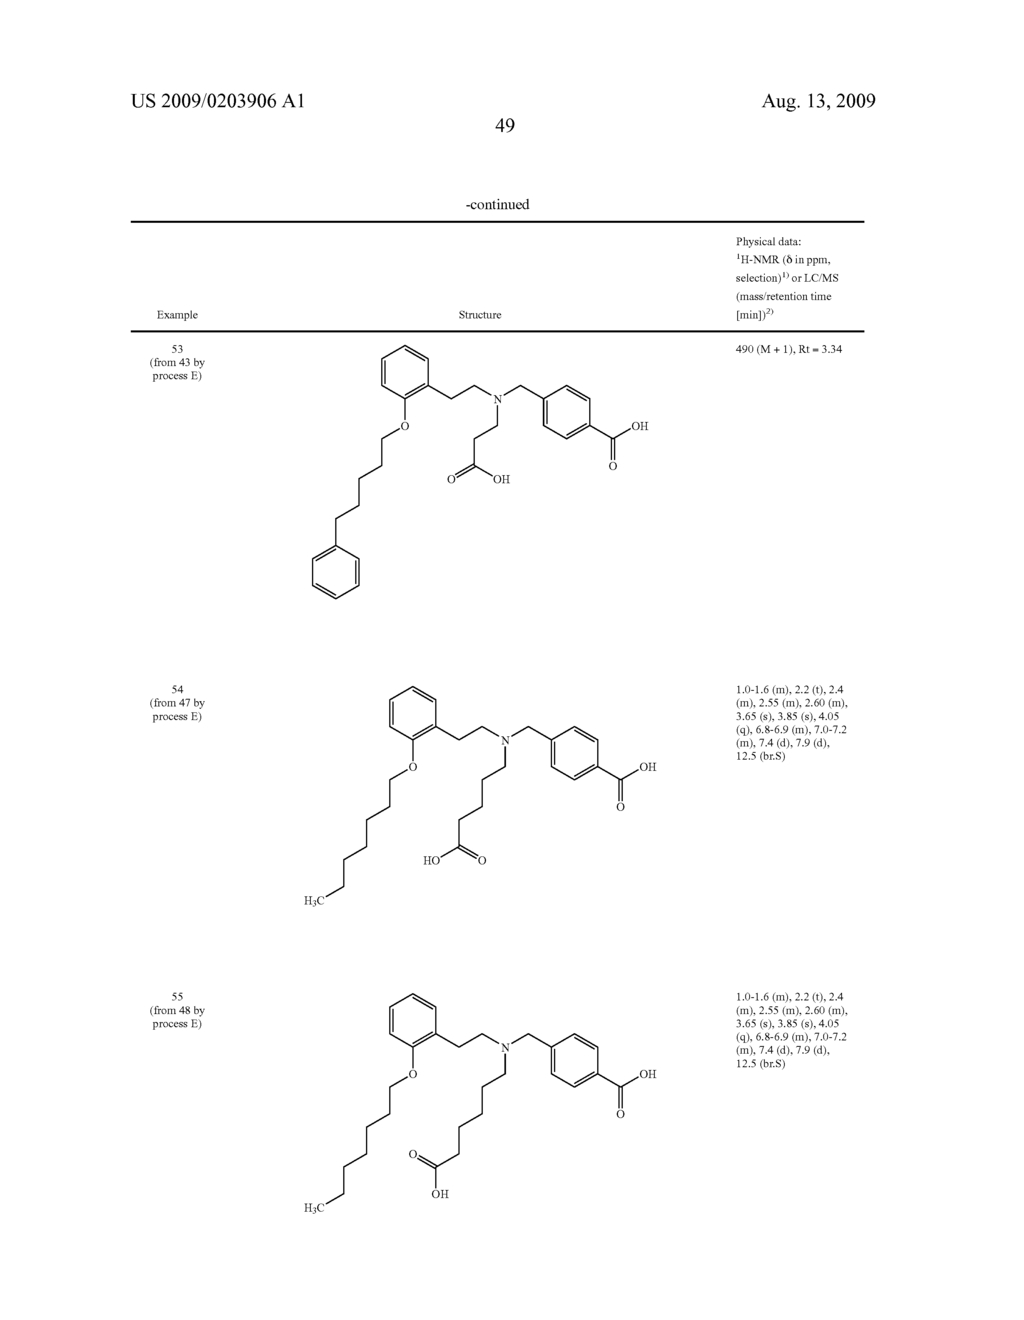 NOVEL AMINODICARBOXYLIC ACID DERIVATIVES HAVING PHARMACEUTICAL PROPERTIES - diagram, schematic, and image 50